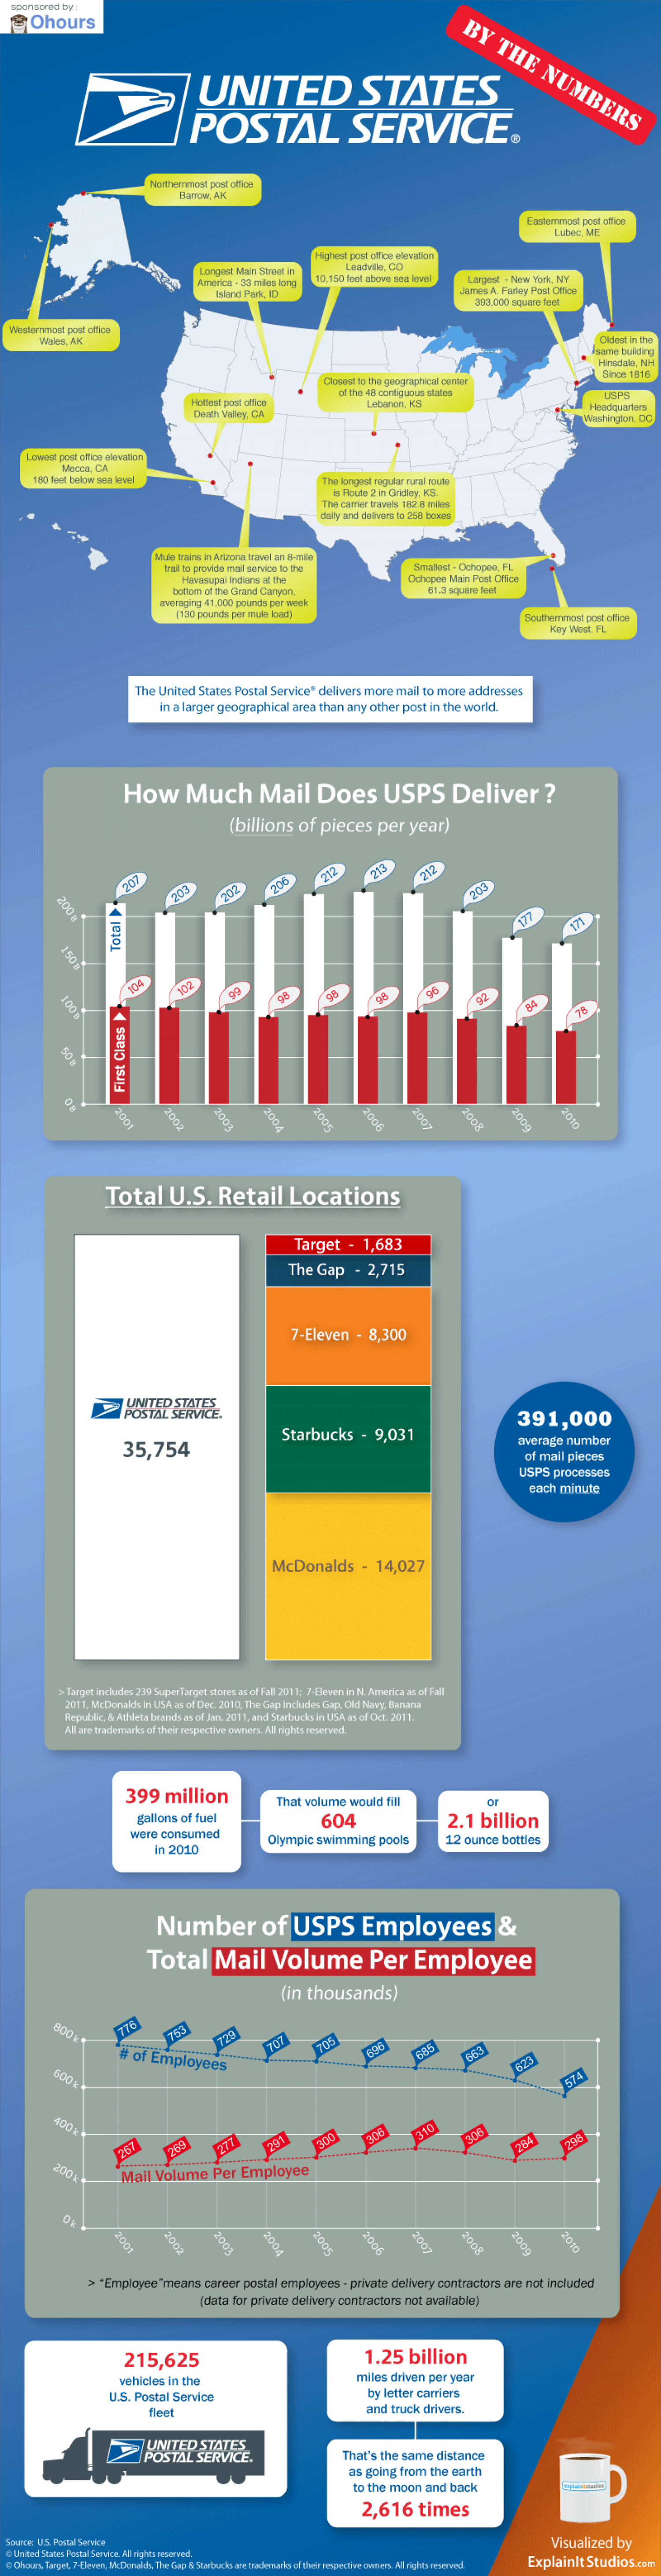 U.S. Postal Service By The Numbers Infographic